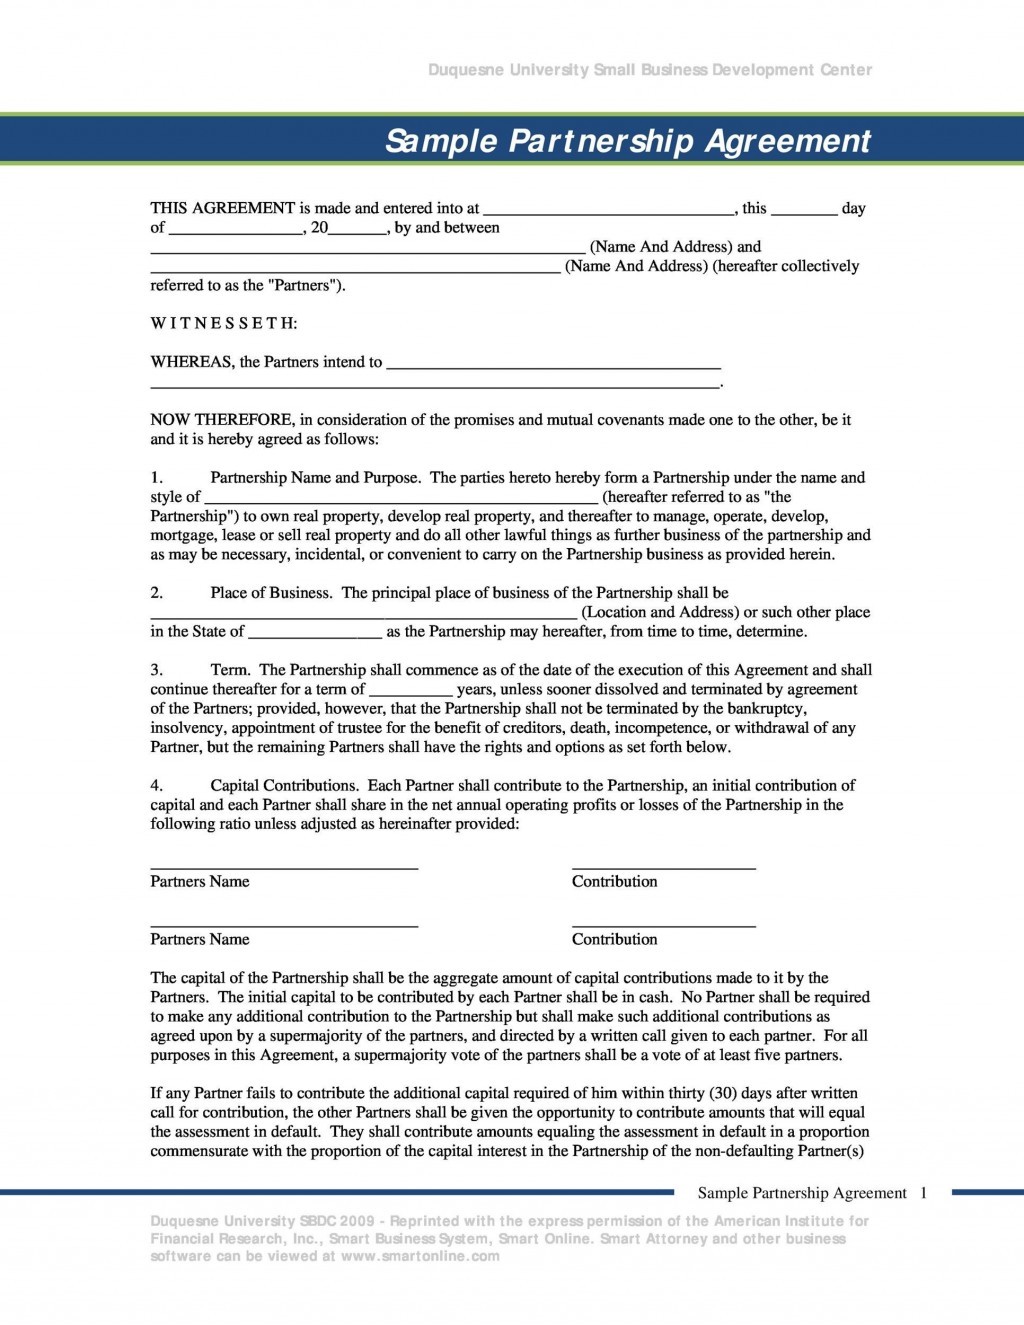 008 Shocking General Partnership Agreement Template Picture  Word Canada Sample FreeLarge